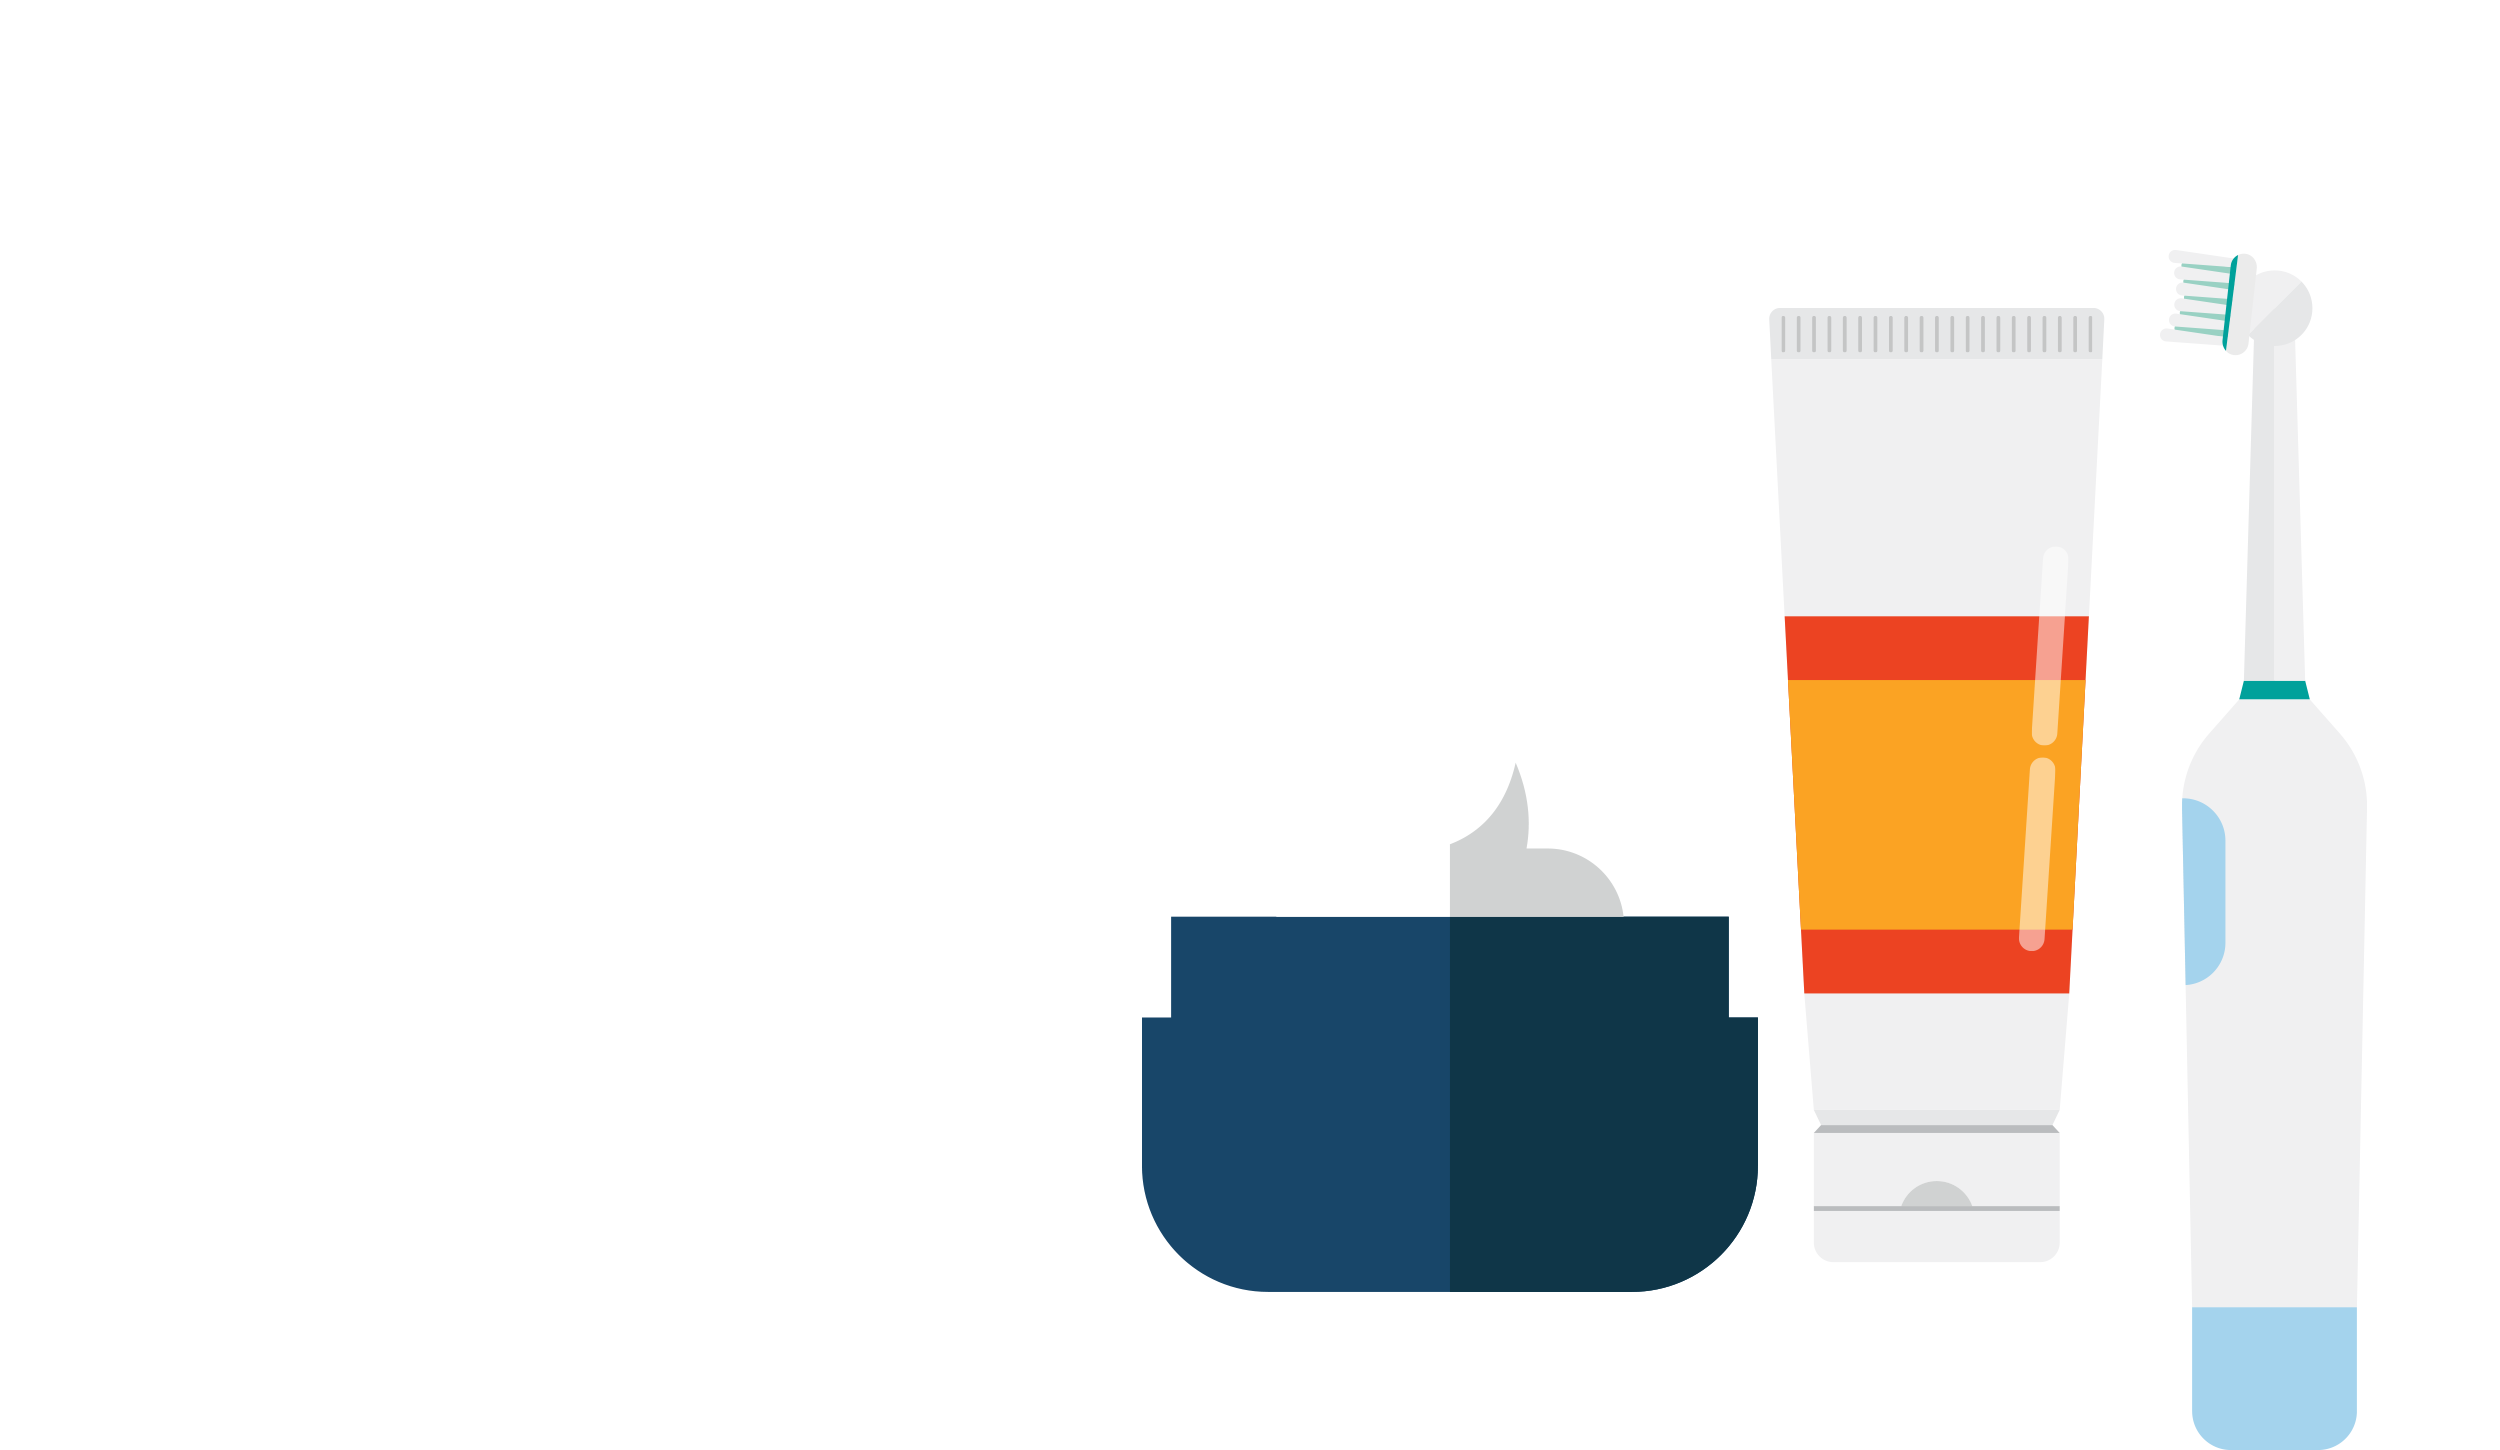 A dark blue jar of cream, a white and orange tube of lotion and a mechanical toothbrush.